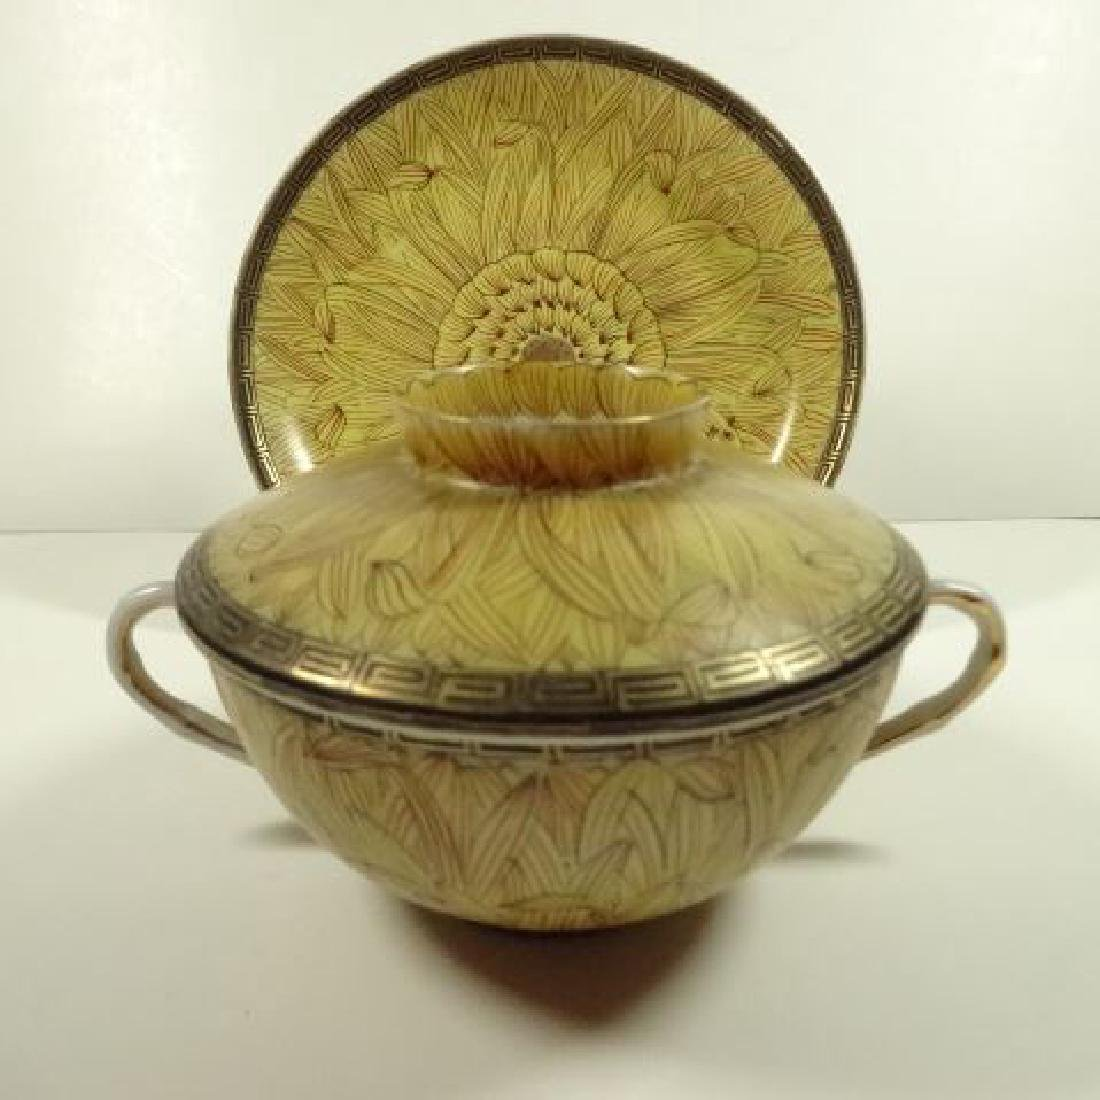 6 PC JAPANESE PORCELAIN BOWLS WITH LIDS AND SAUCERS, 3 - 2